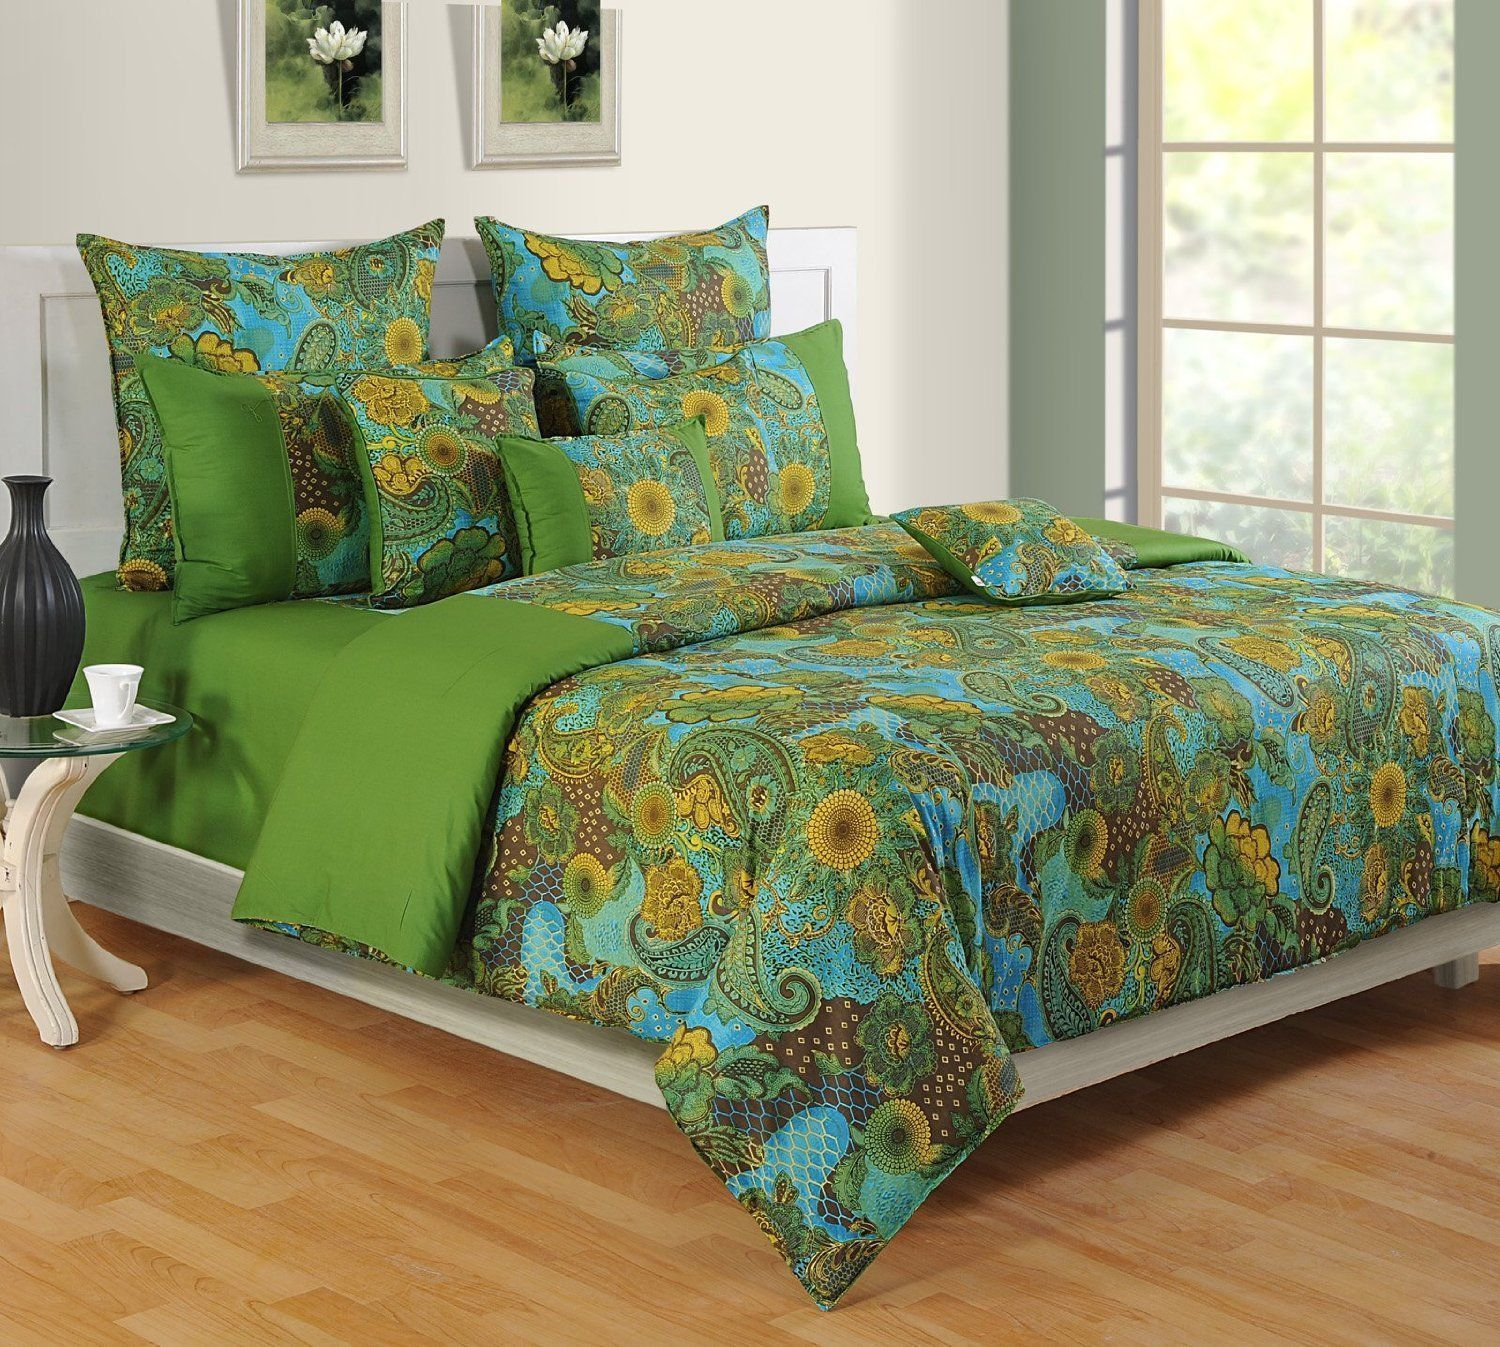 New Twin/Queen/King Size Bed Cover